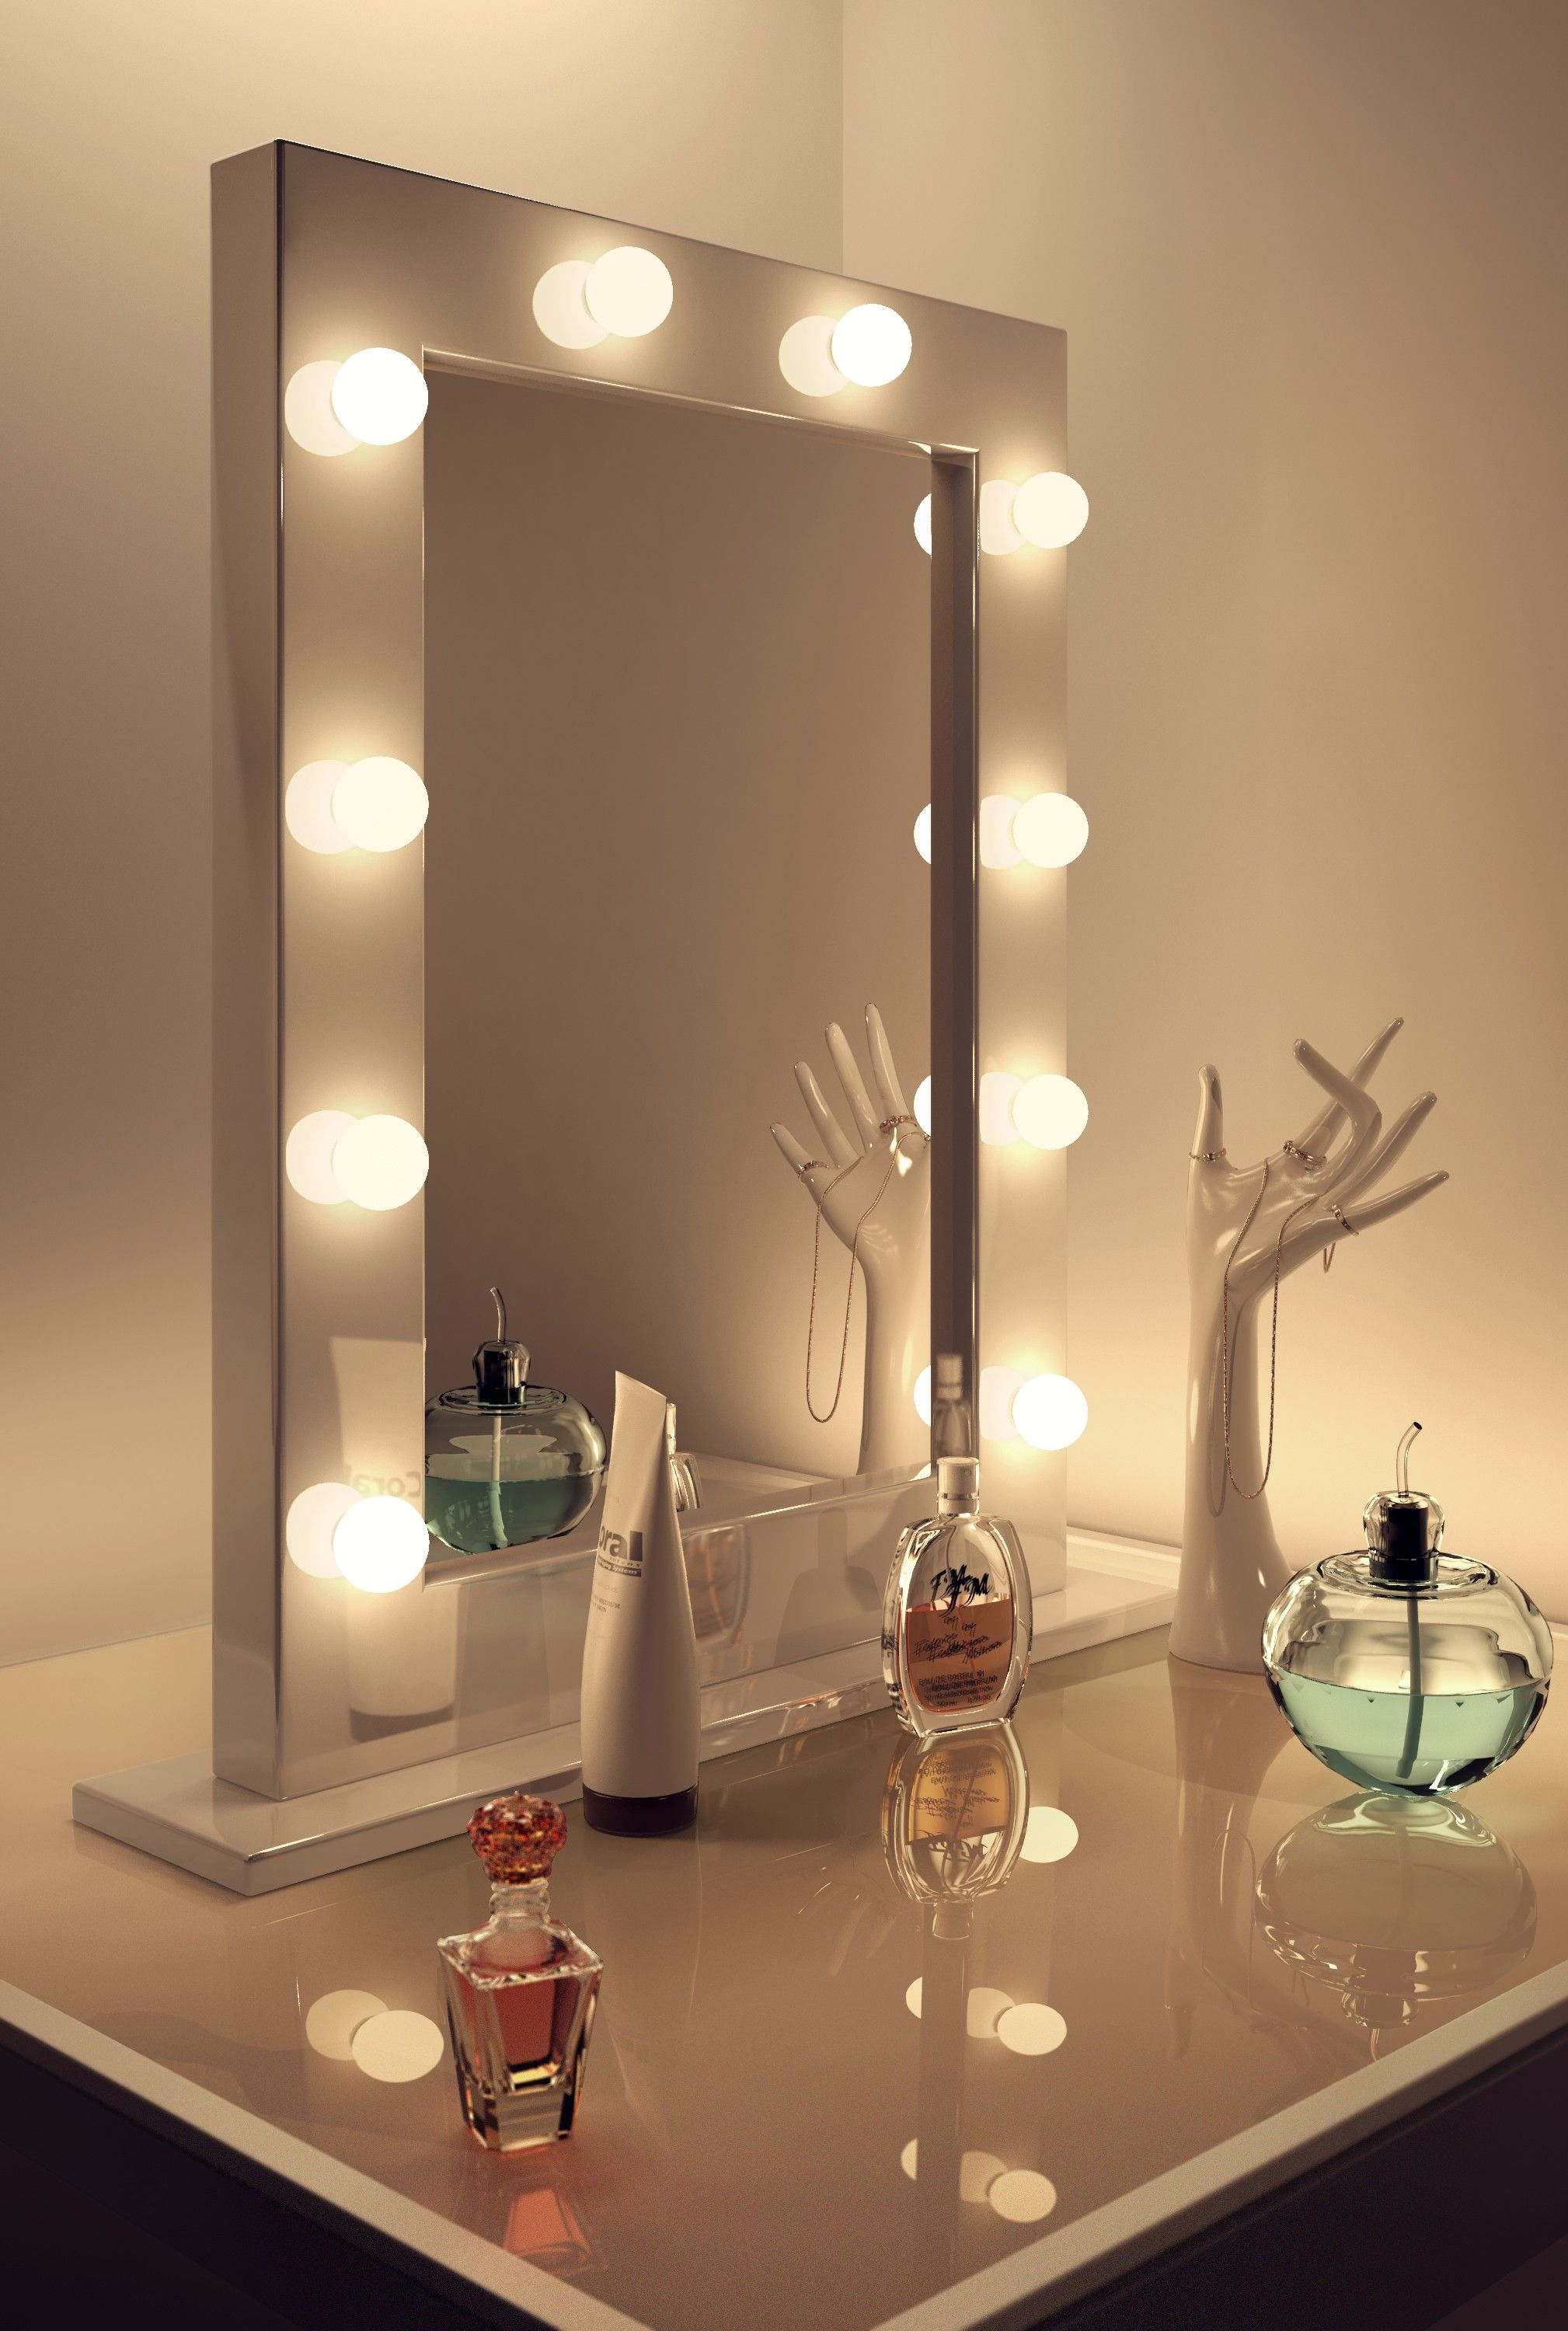 vanity mirror bertch bathroom get your mirrors july